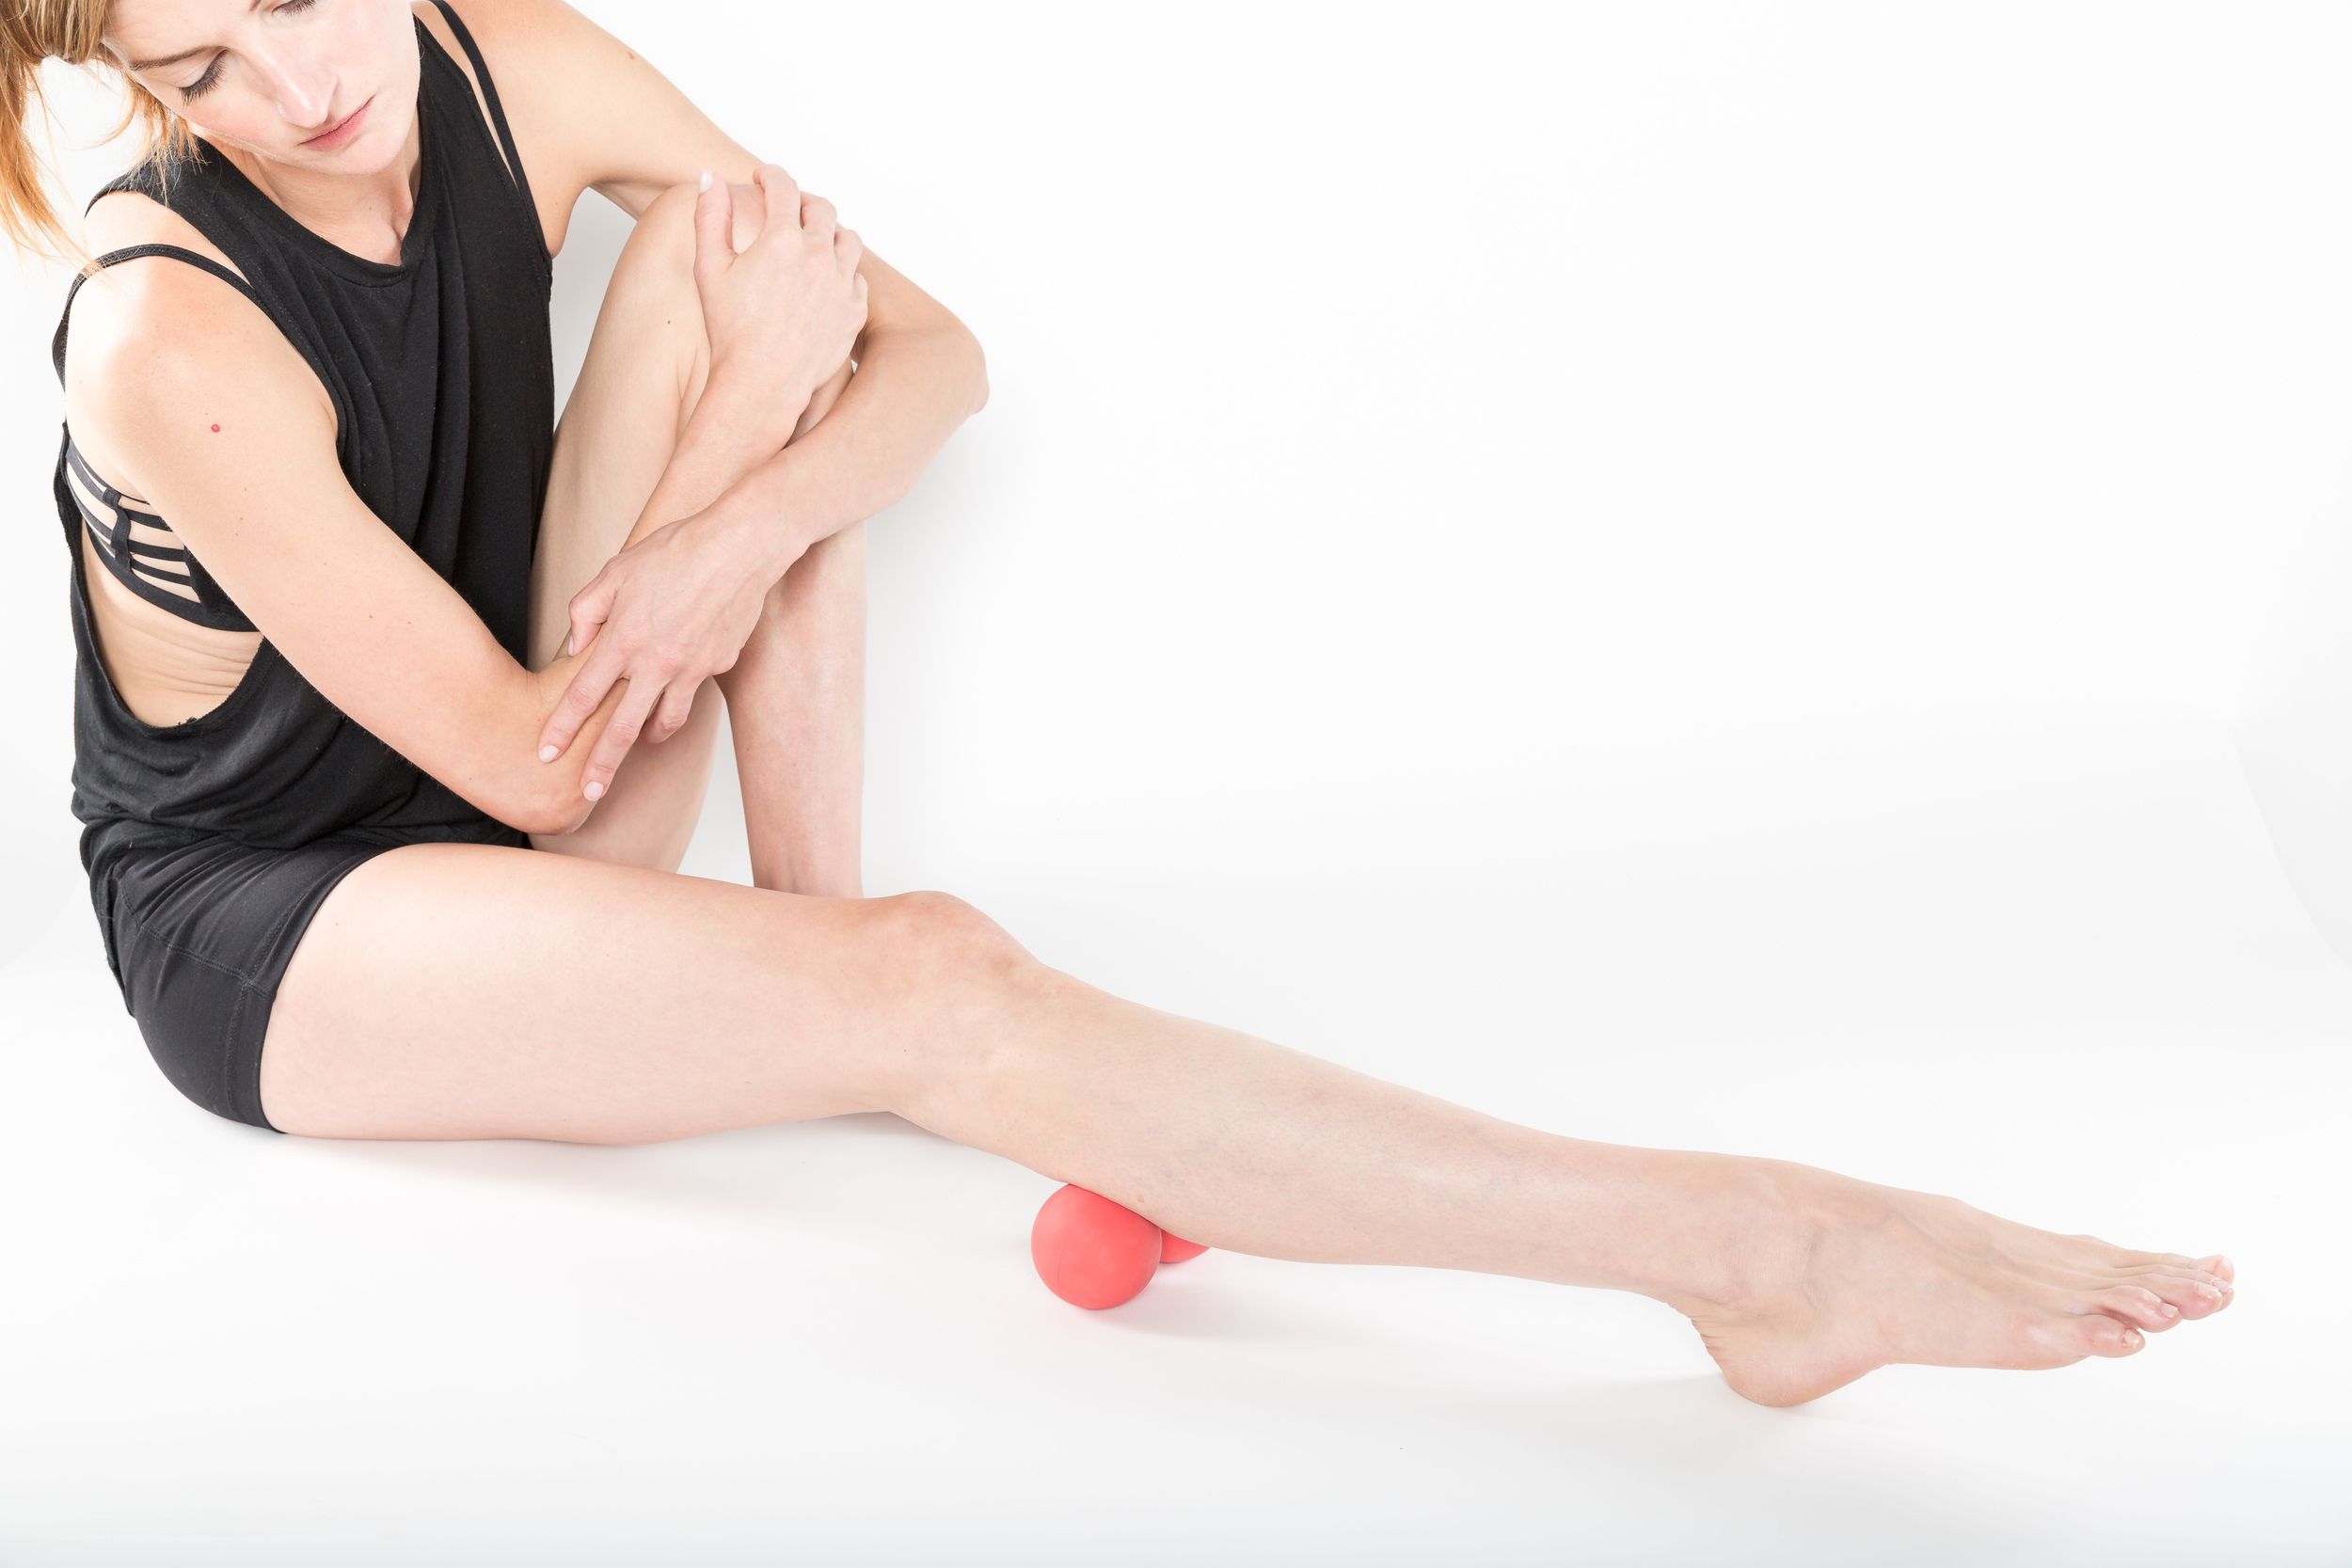 Flexistretcher_MassageBalls_05232016-48.jpg